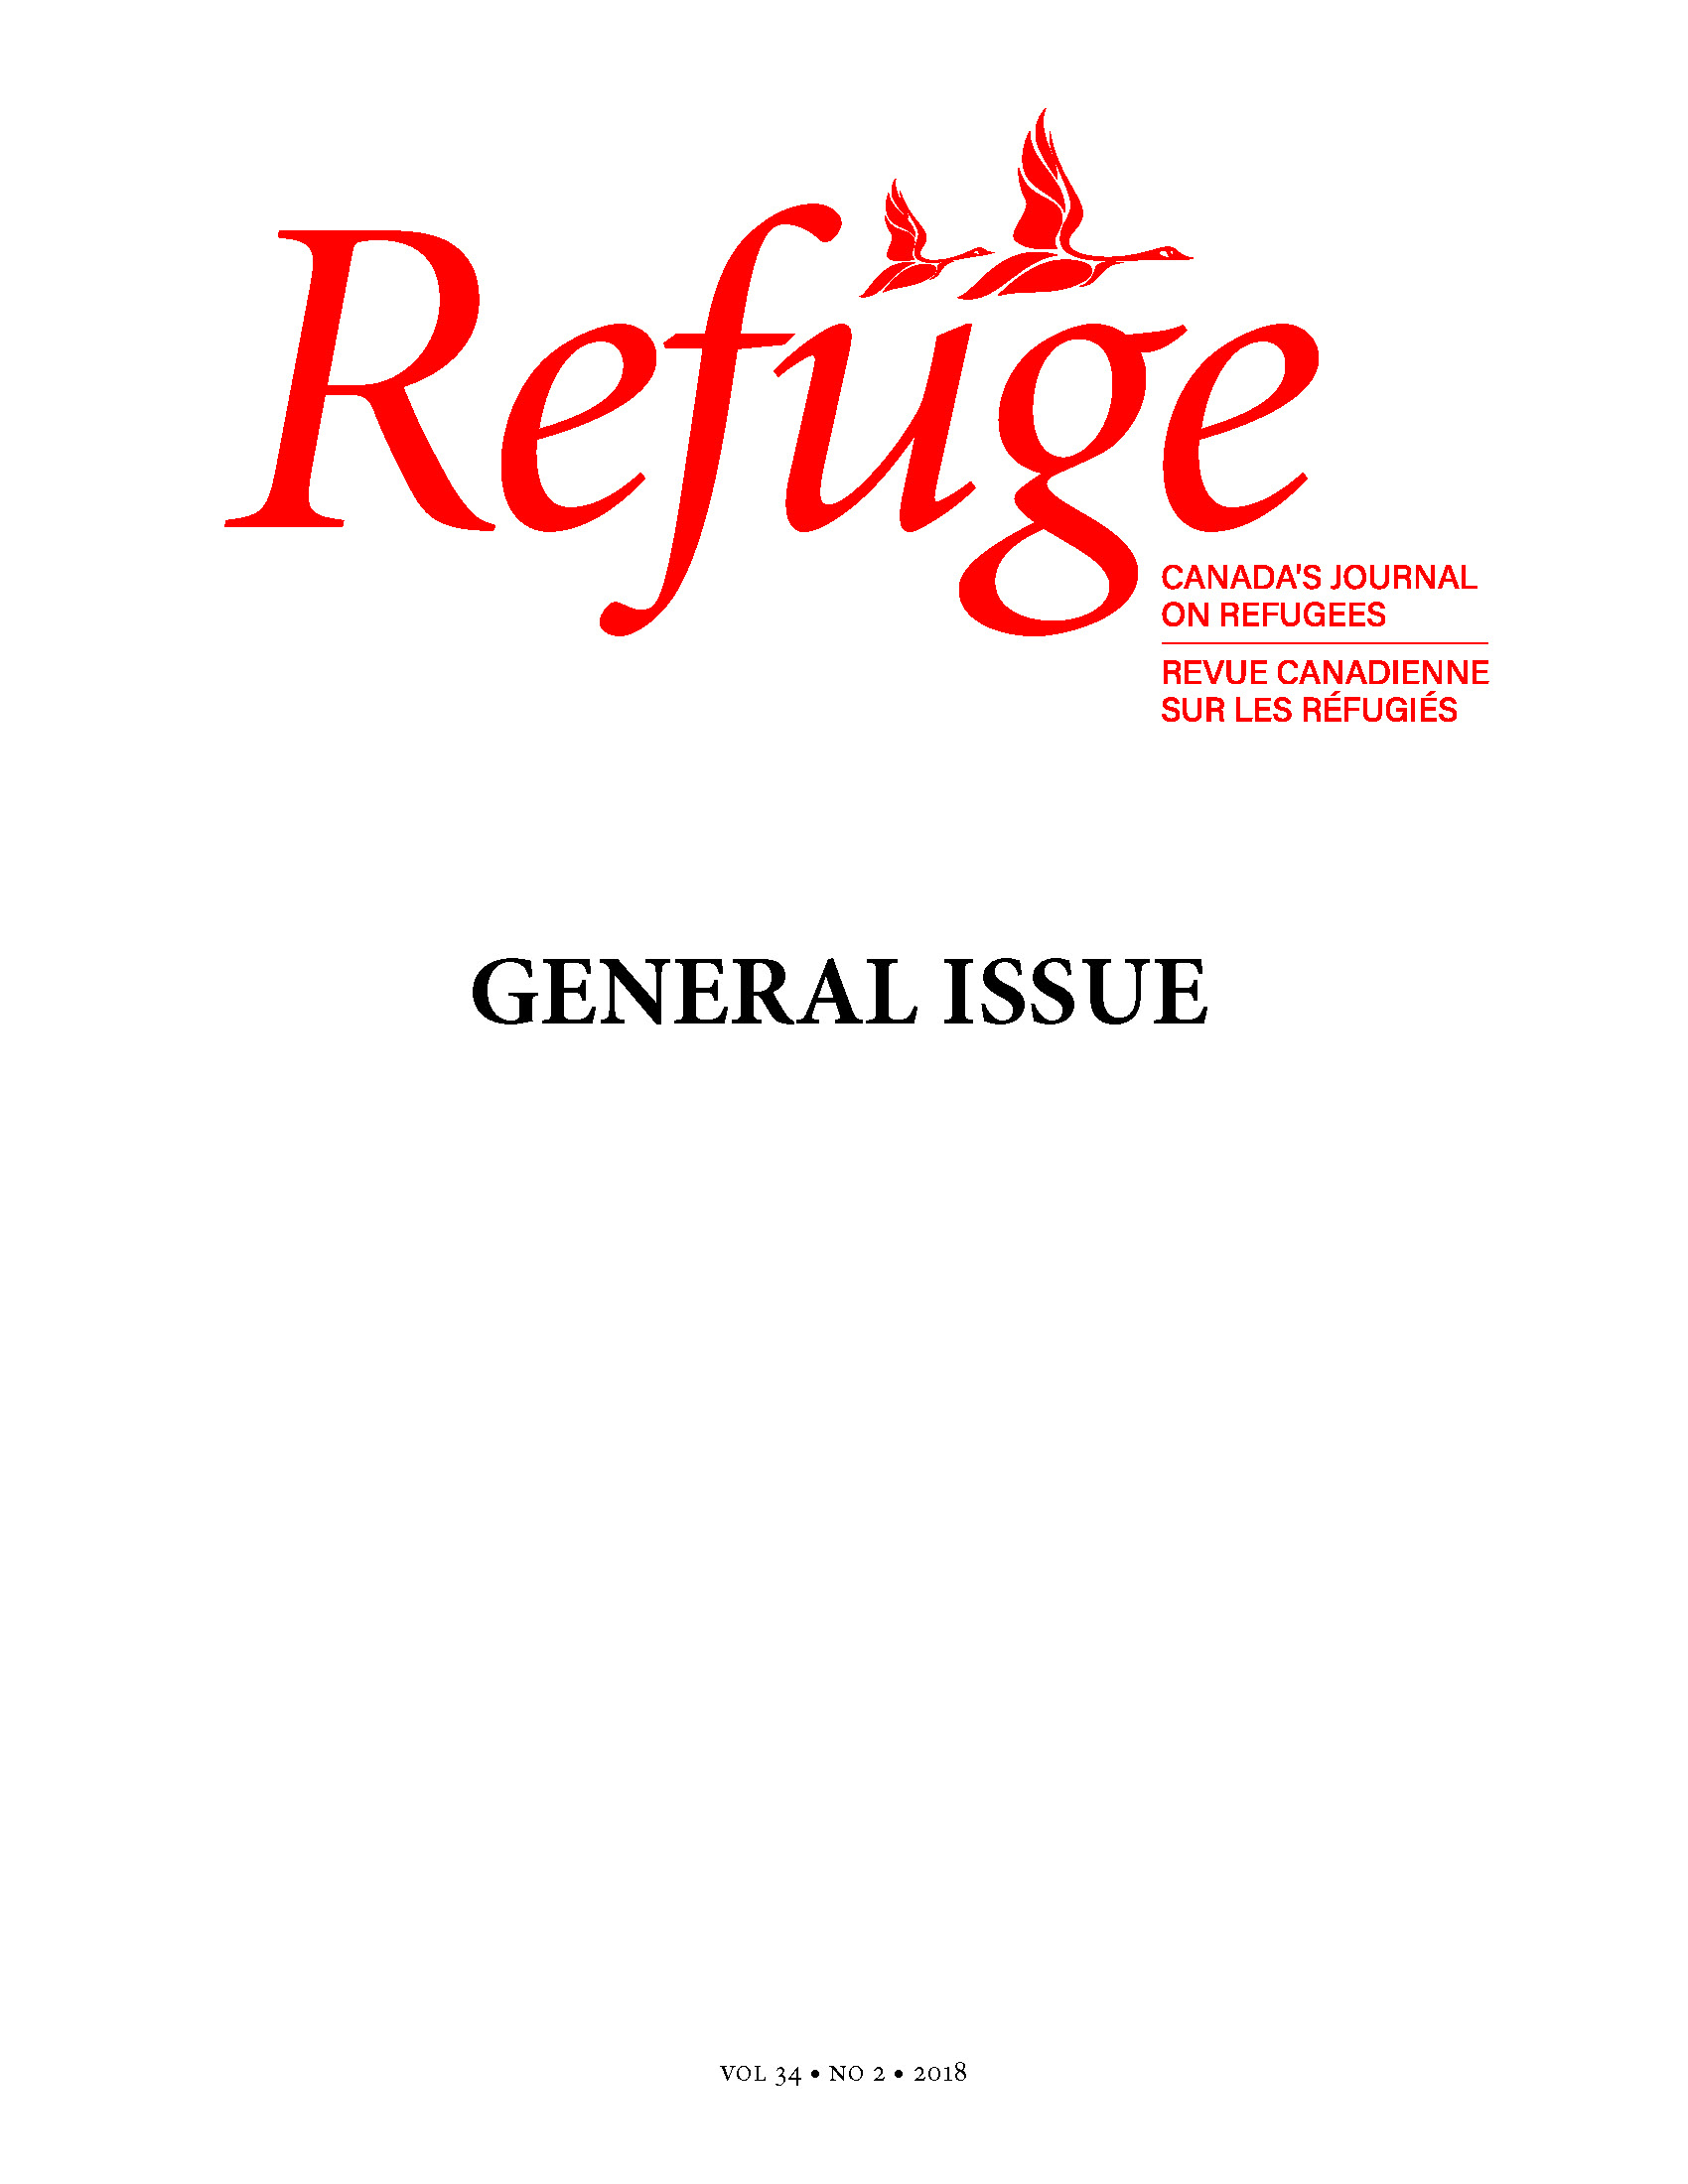 cover of Refuge general issue 34 no. 2 2018